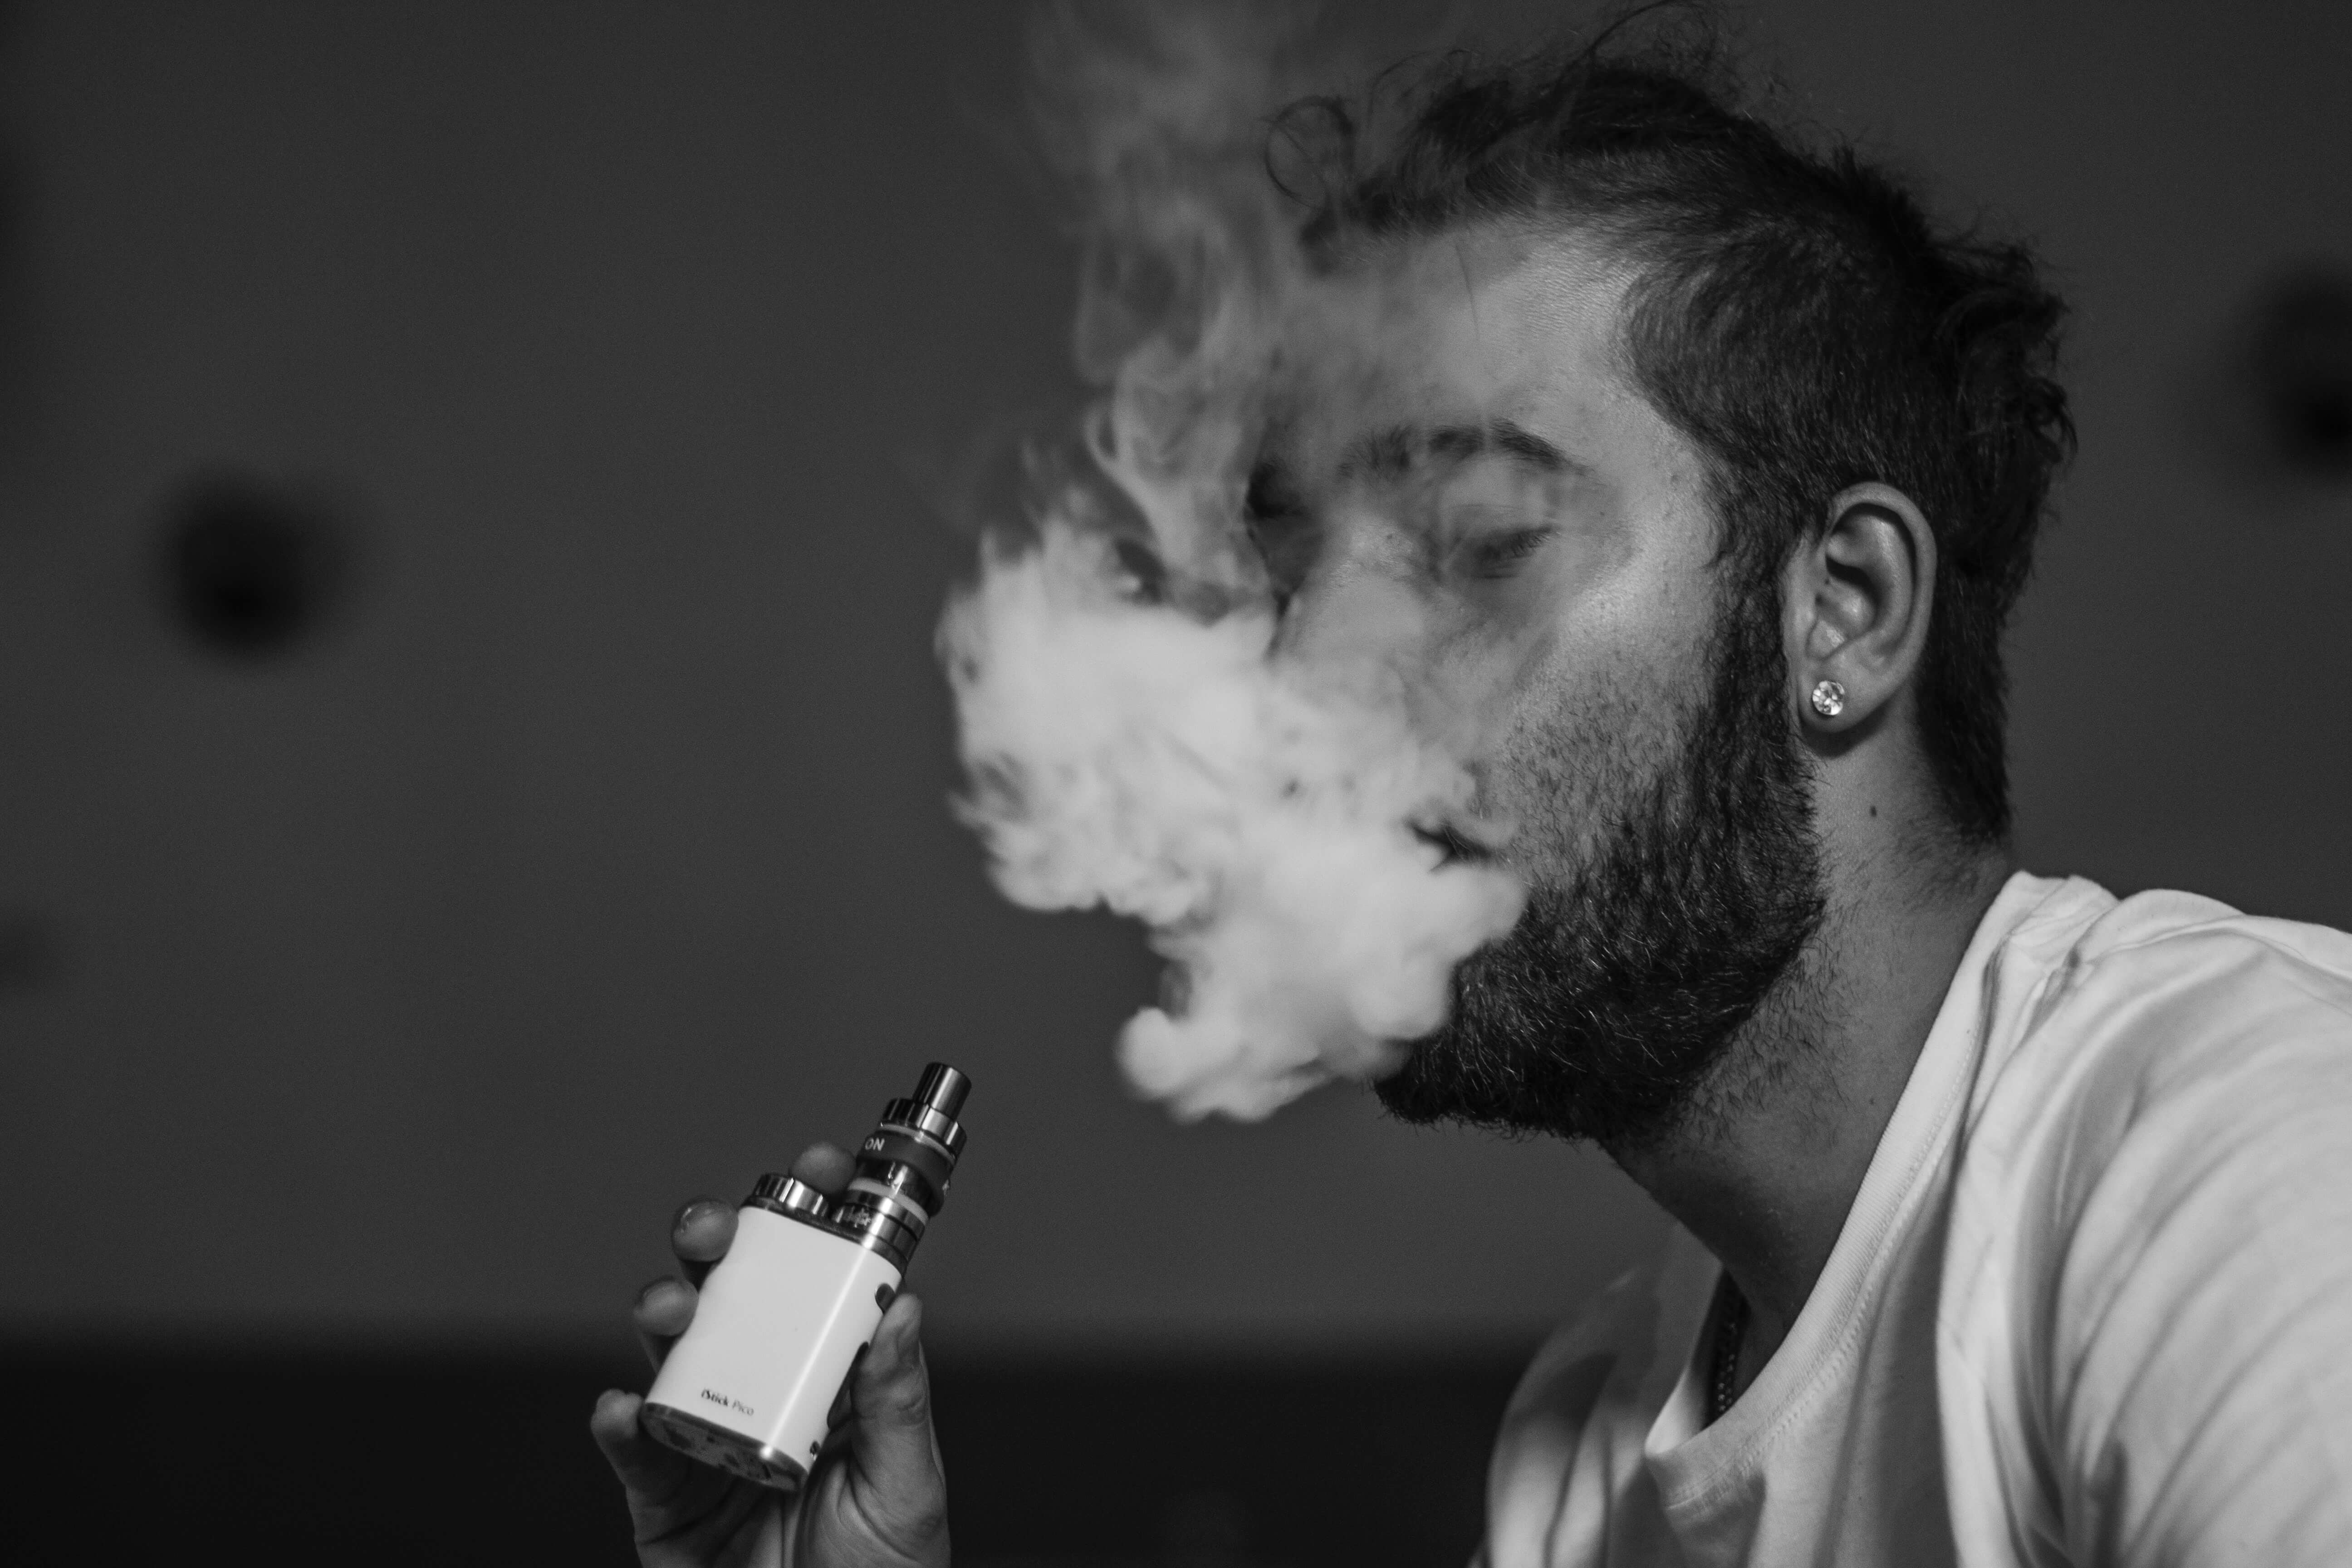 guy smoking from e-cigarette